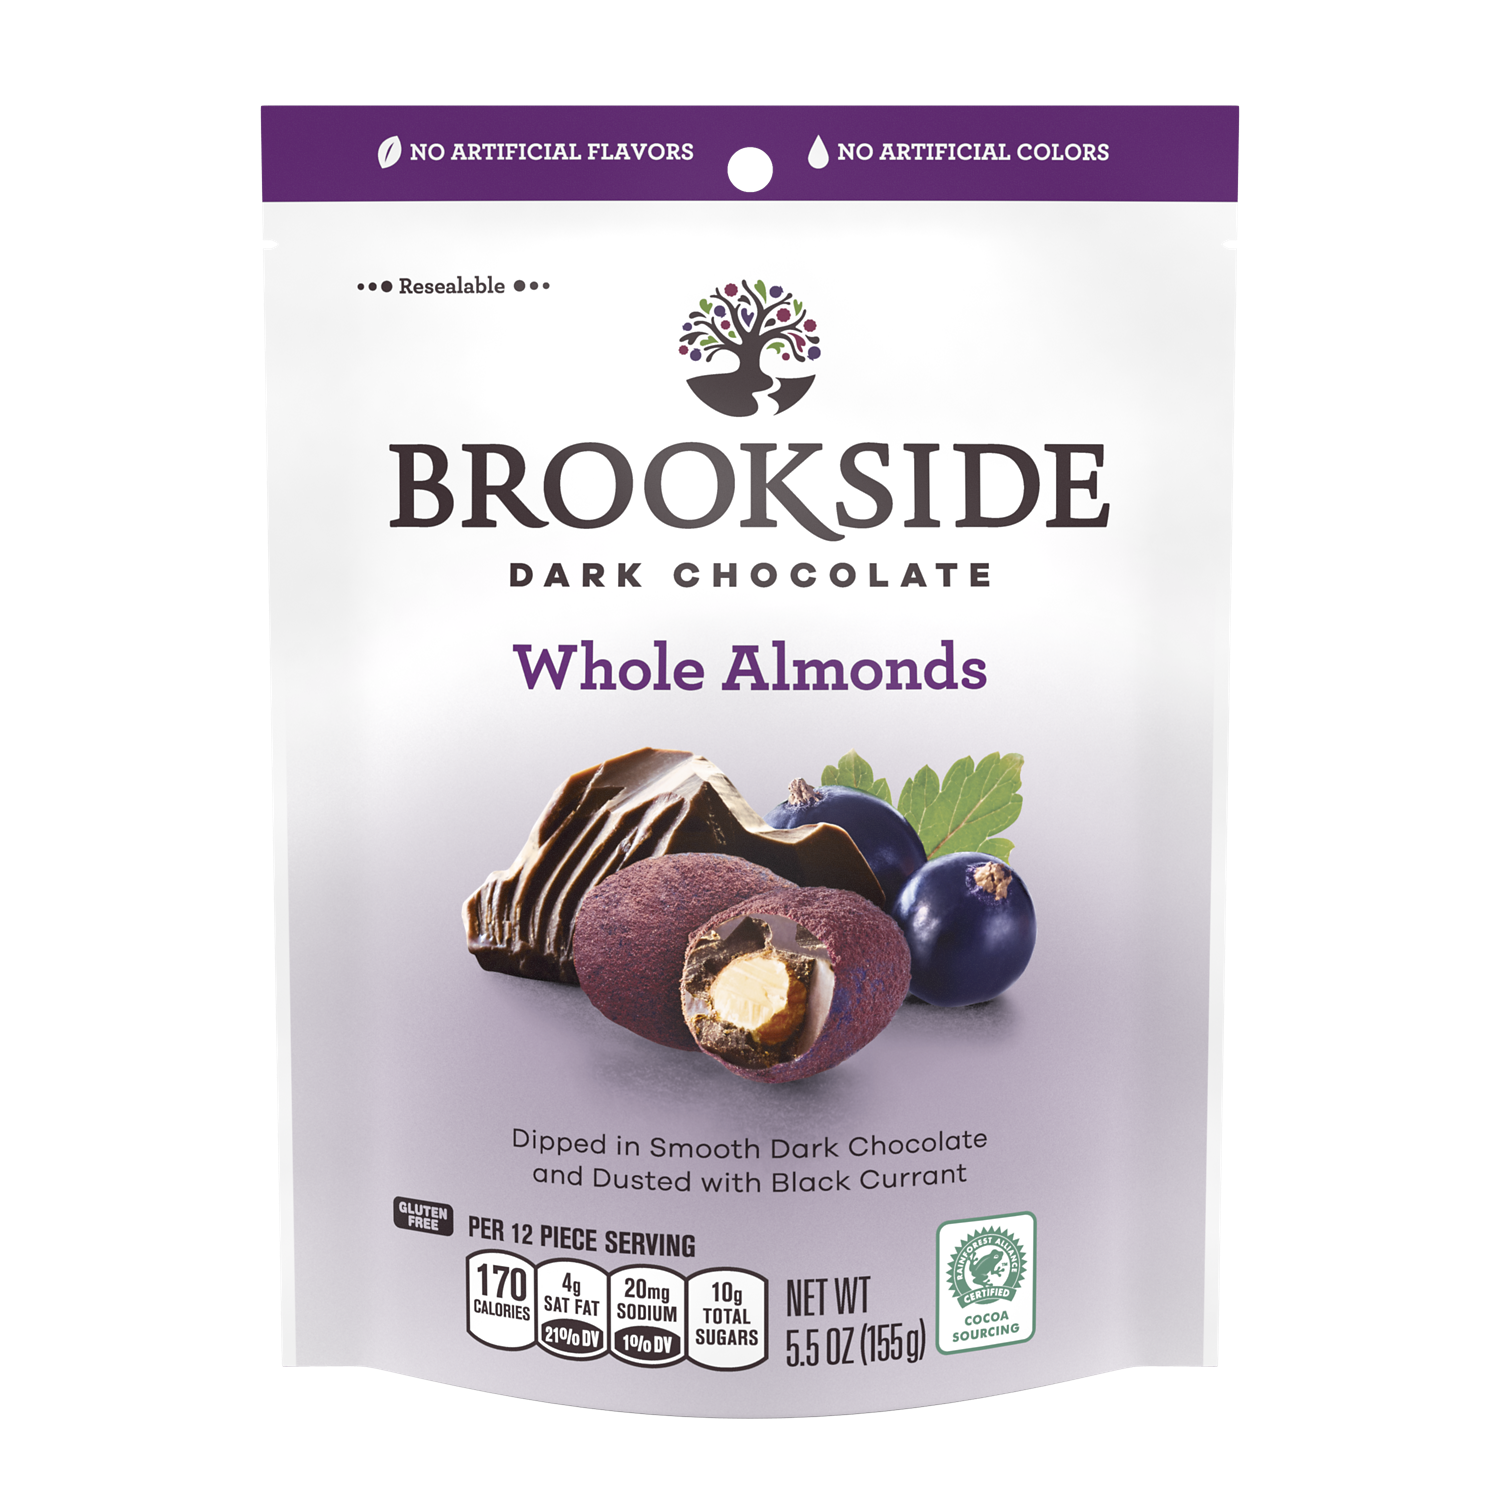 BROOKSIDE Dark Chocolate Whole Almonds Dusted with Black Currant Candy, 5.5 oz bag - Front of Package